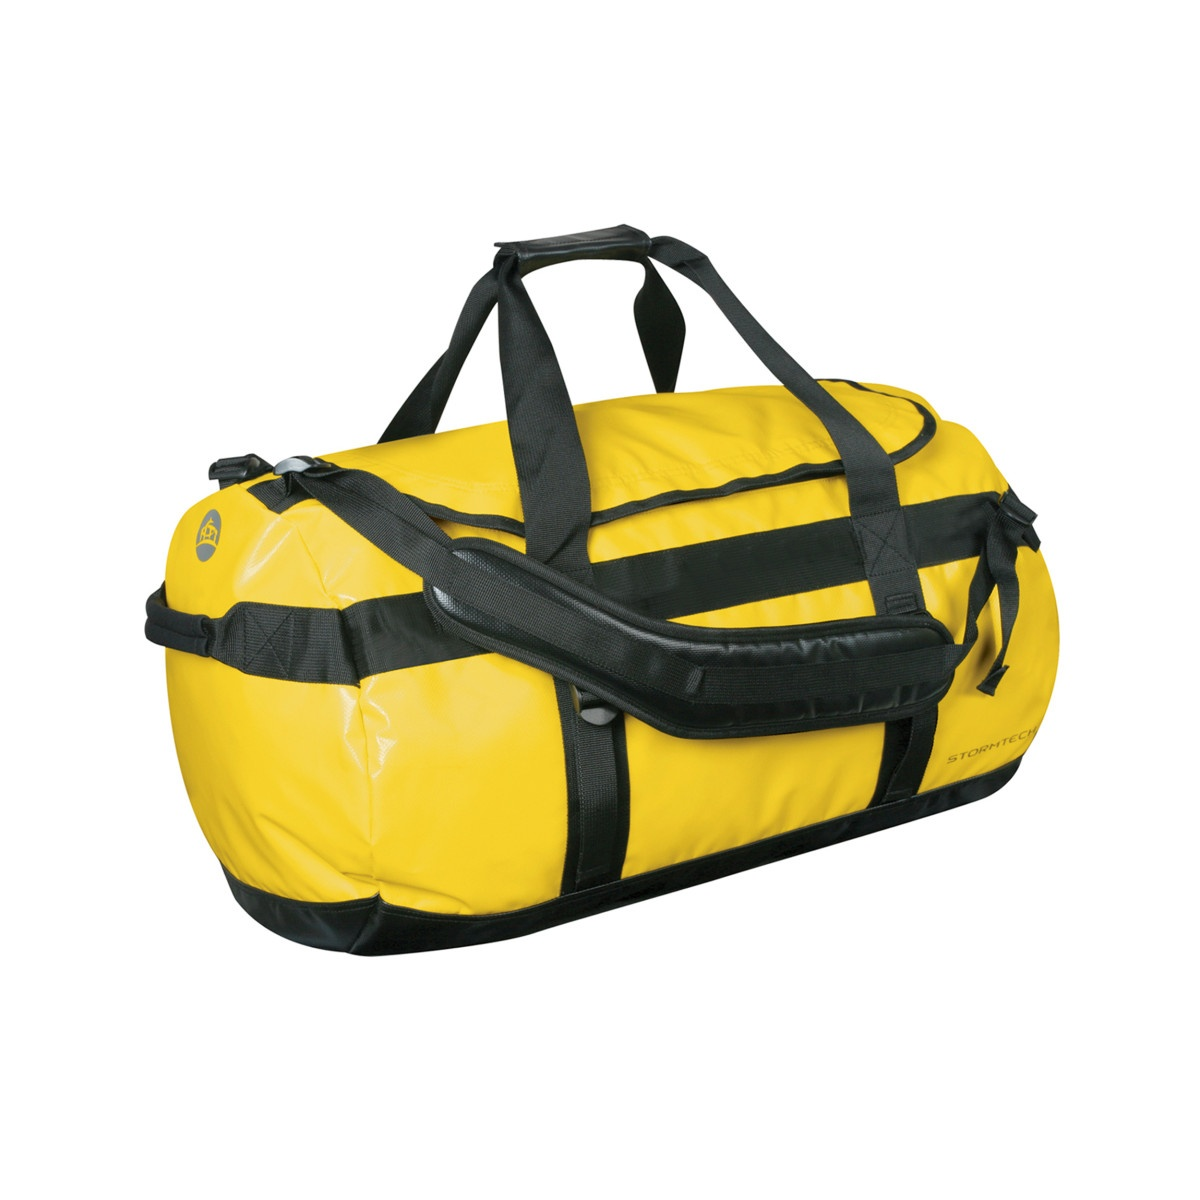 Stormtech Waterproof Gear Holdall Bag (Large) (Pack of 2) (One Size) (Yellow/Black)